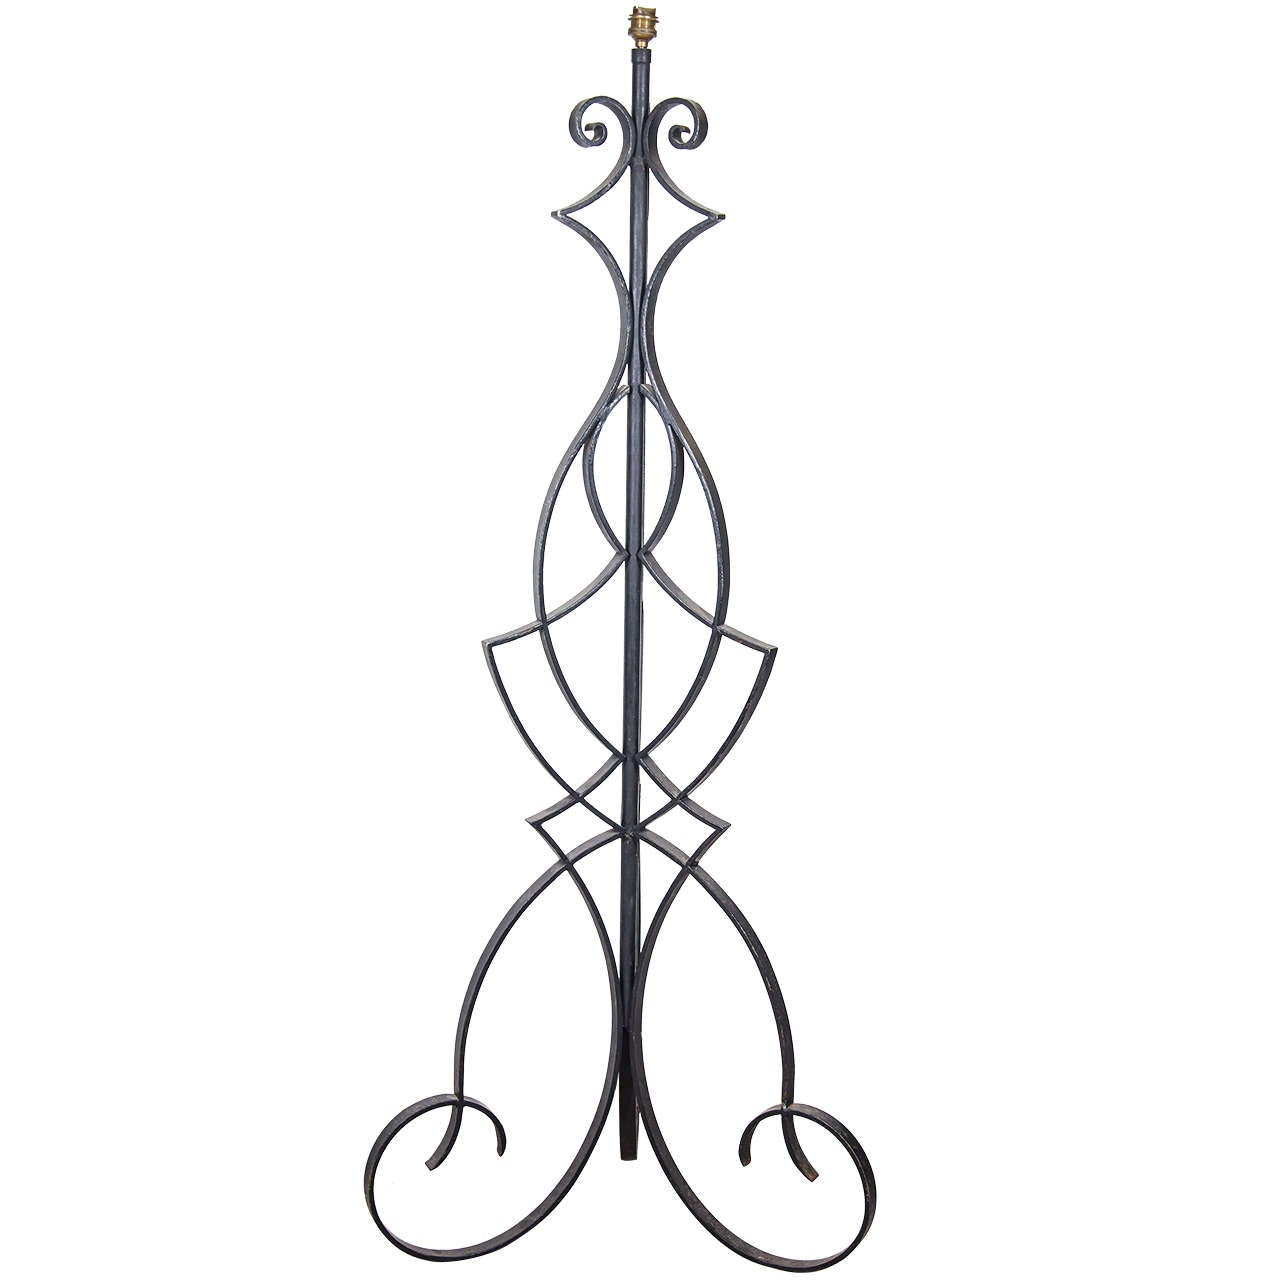 A Mid Century Wrought Iron Floor Lamp Attributed to Robert